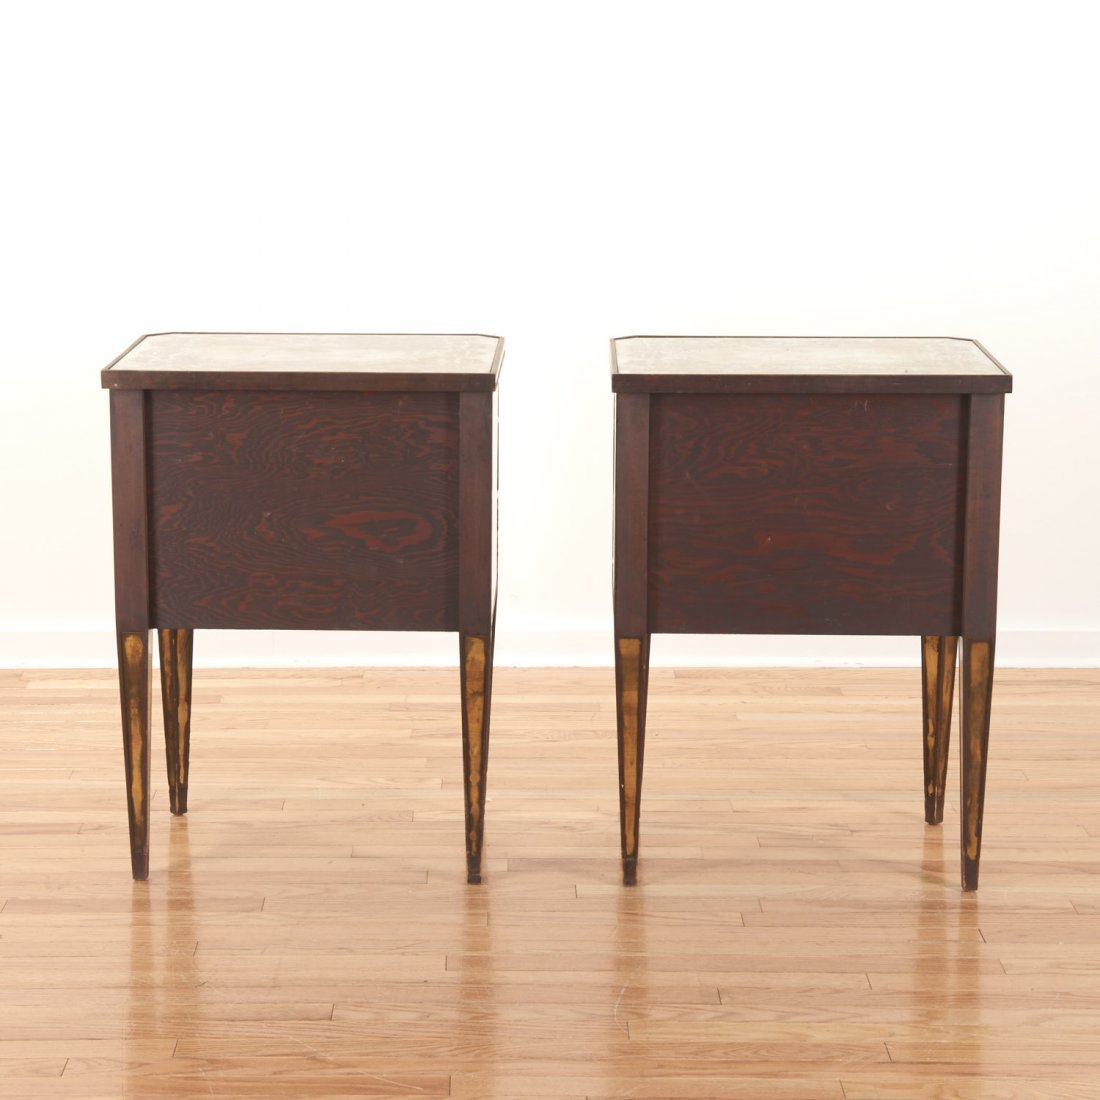 Pair Art Deco mirror paneled side tables - 9